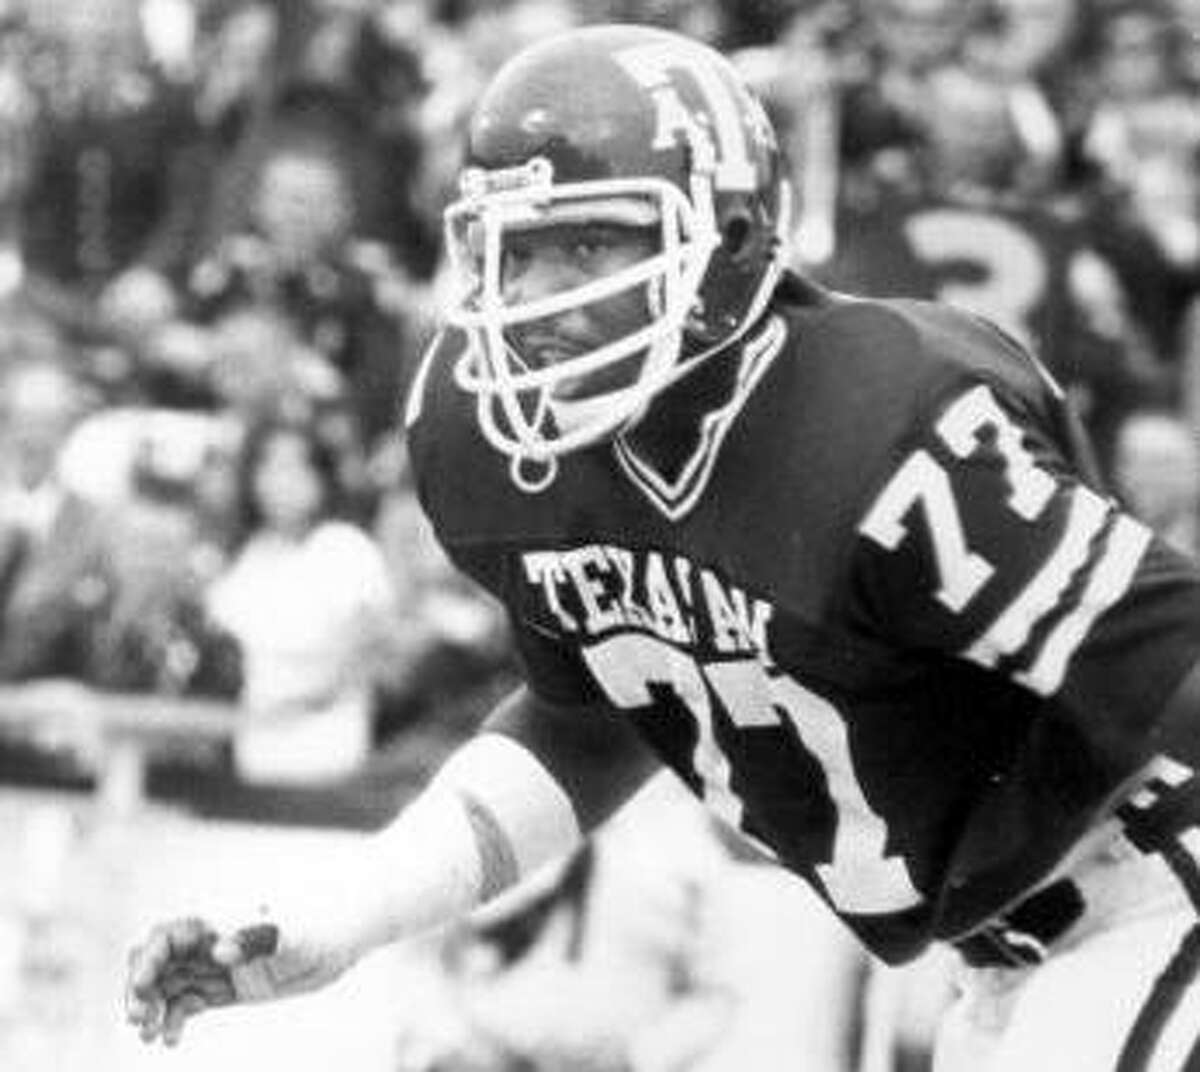 Jacob Green became the 11th Texas A&M player to be inducted into the College Football Hall of Fame.